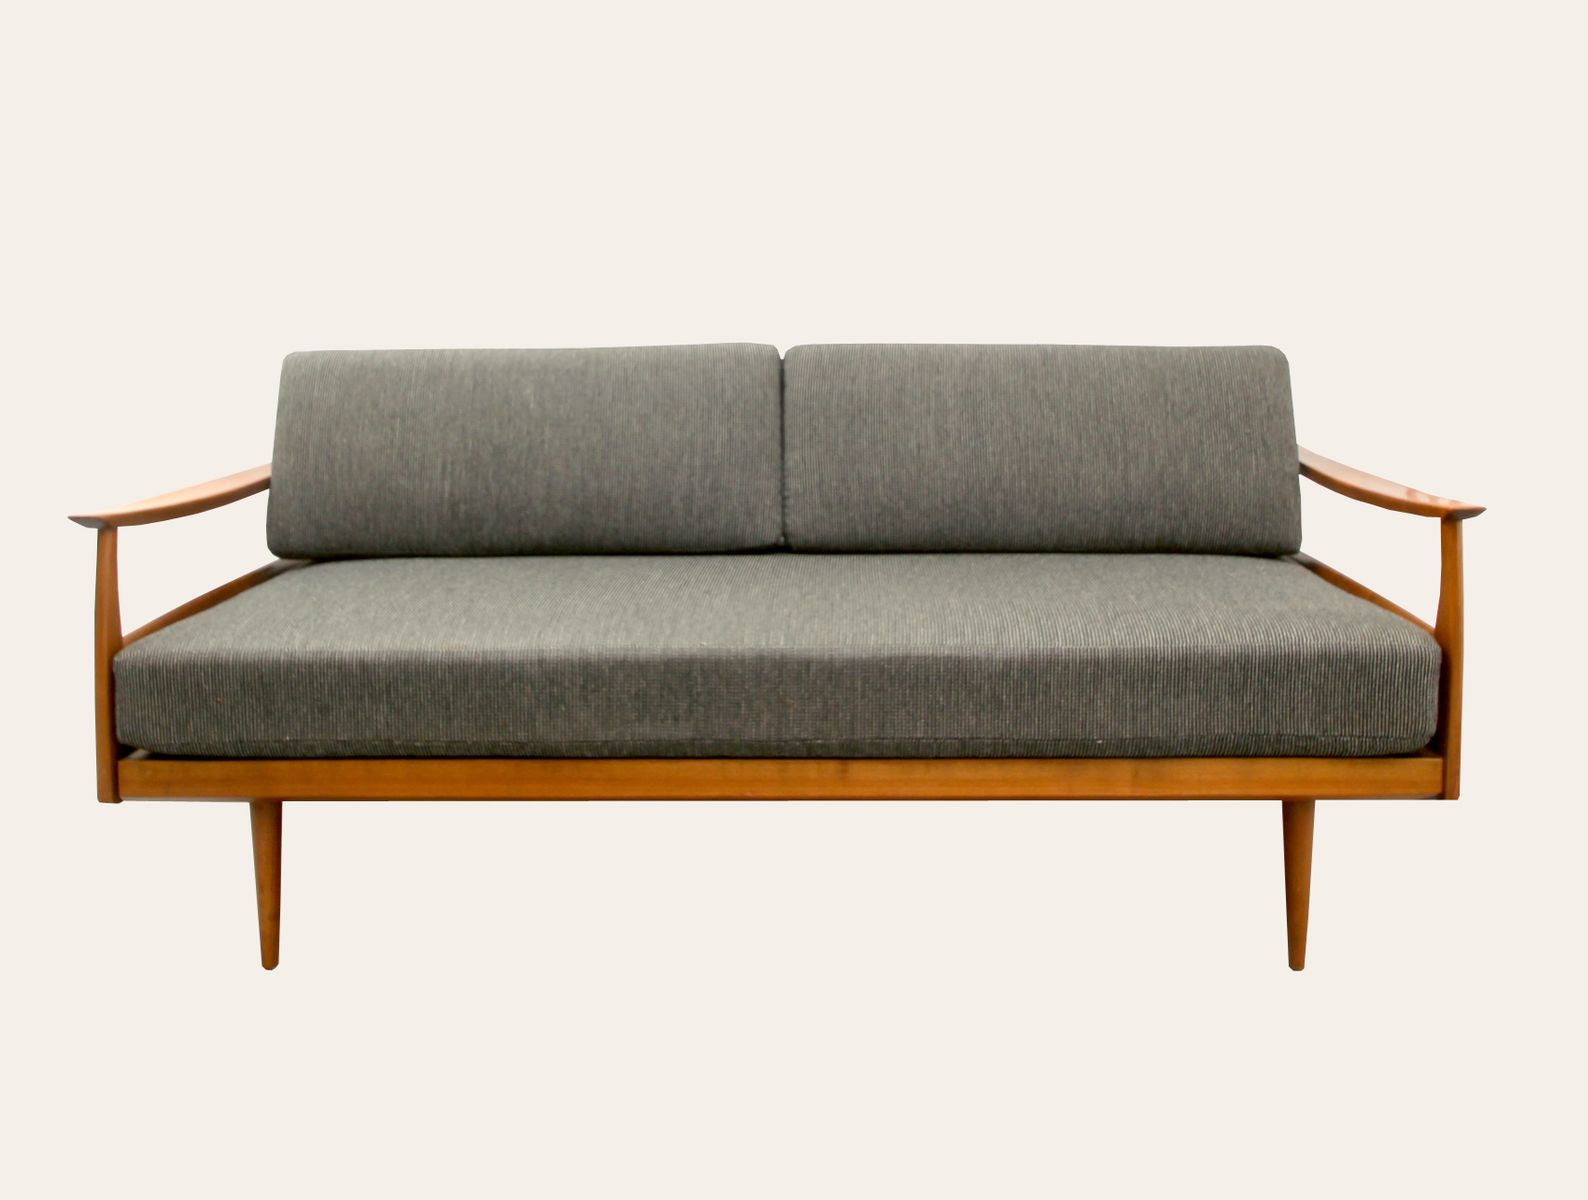 Extendable Daybed from Knoll Antimott, 1950s for sale at Pamono